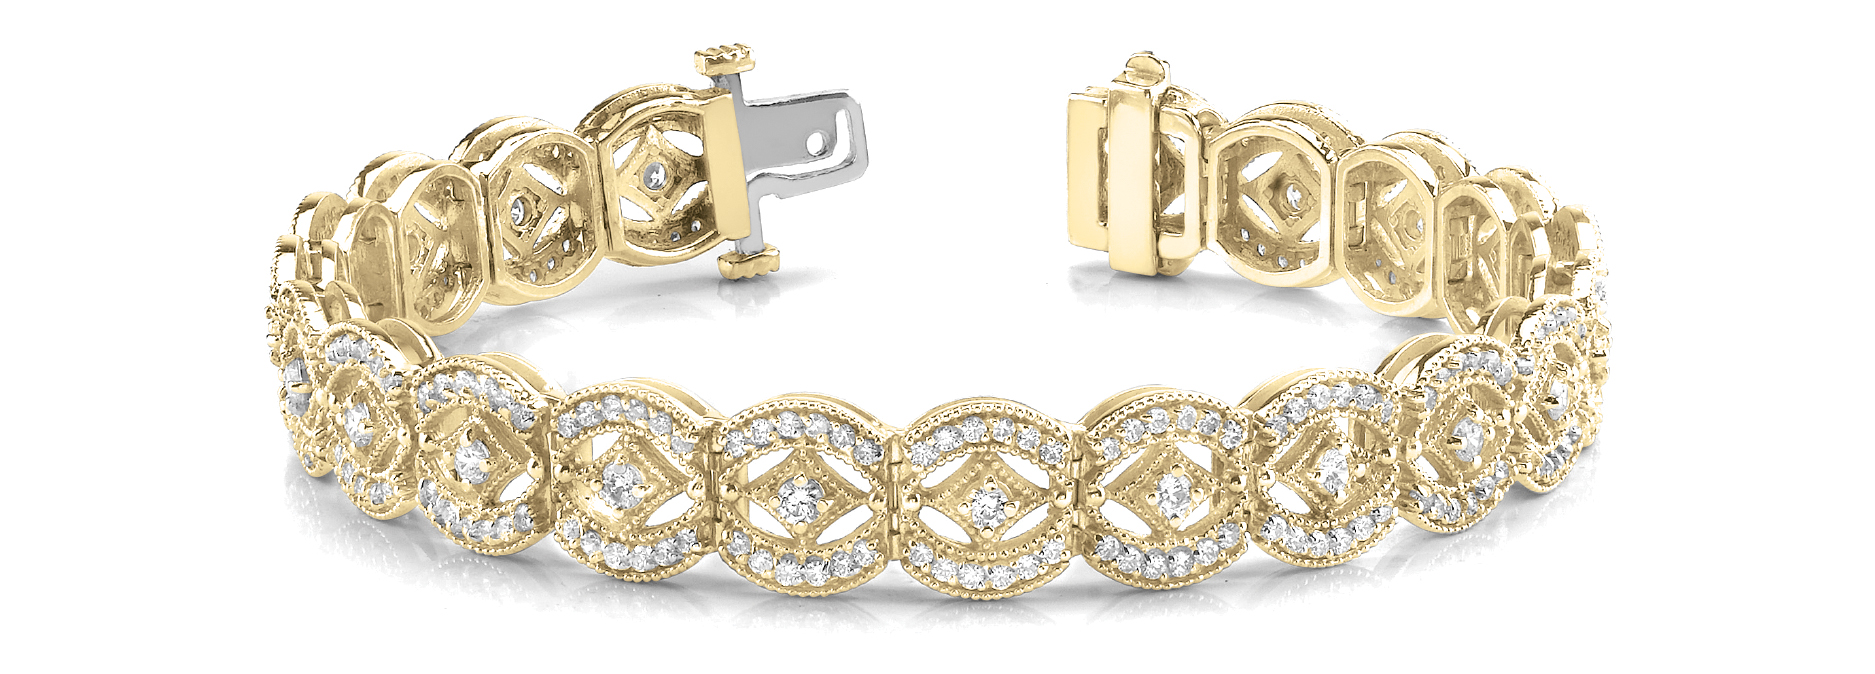 Vintage Style Argyle Round Diamond Bracelet Yellow Gold 4.0 CT.